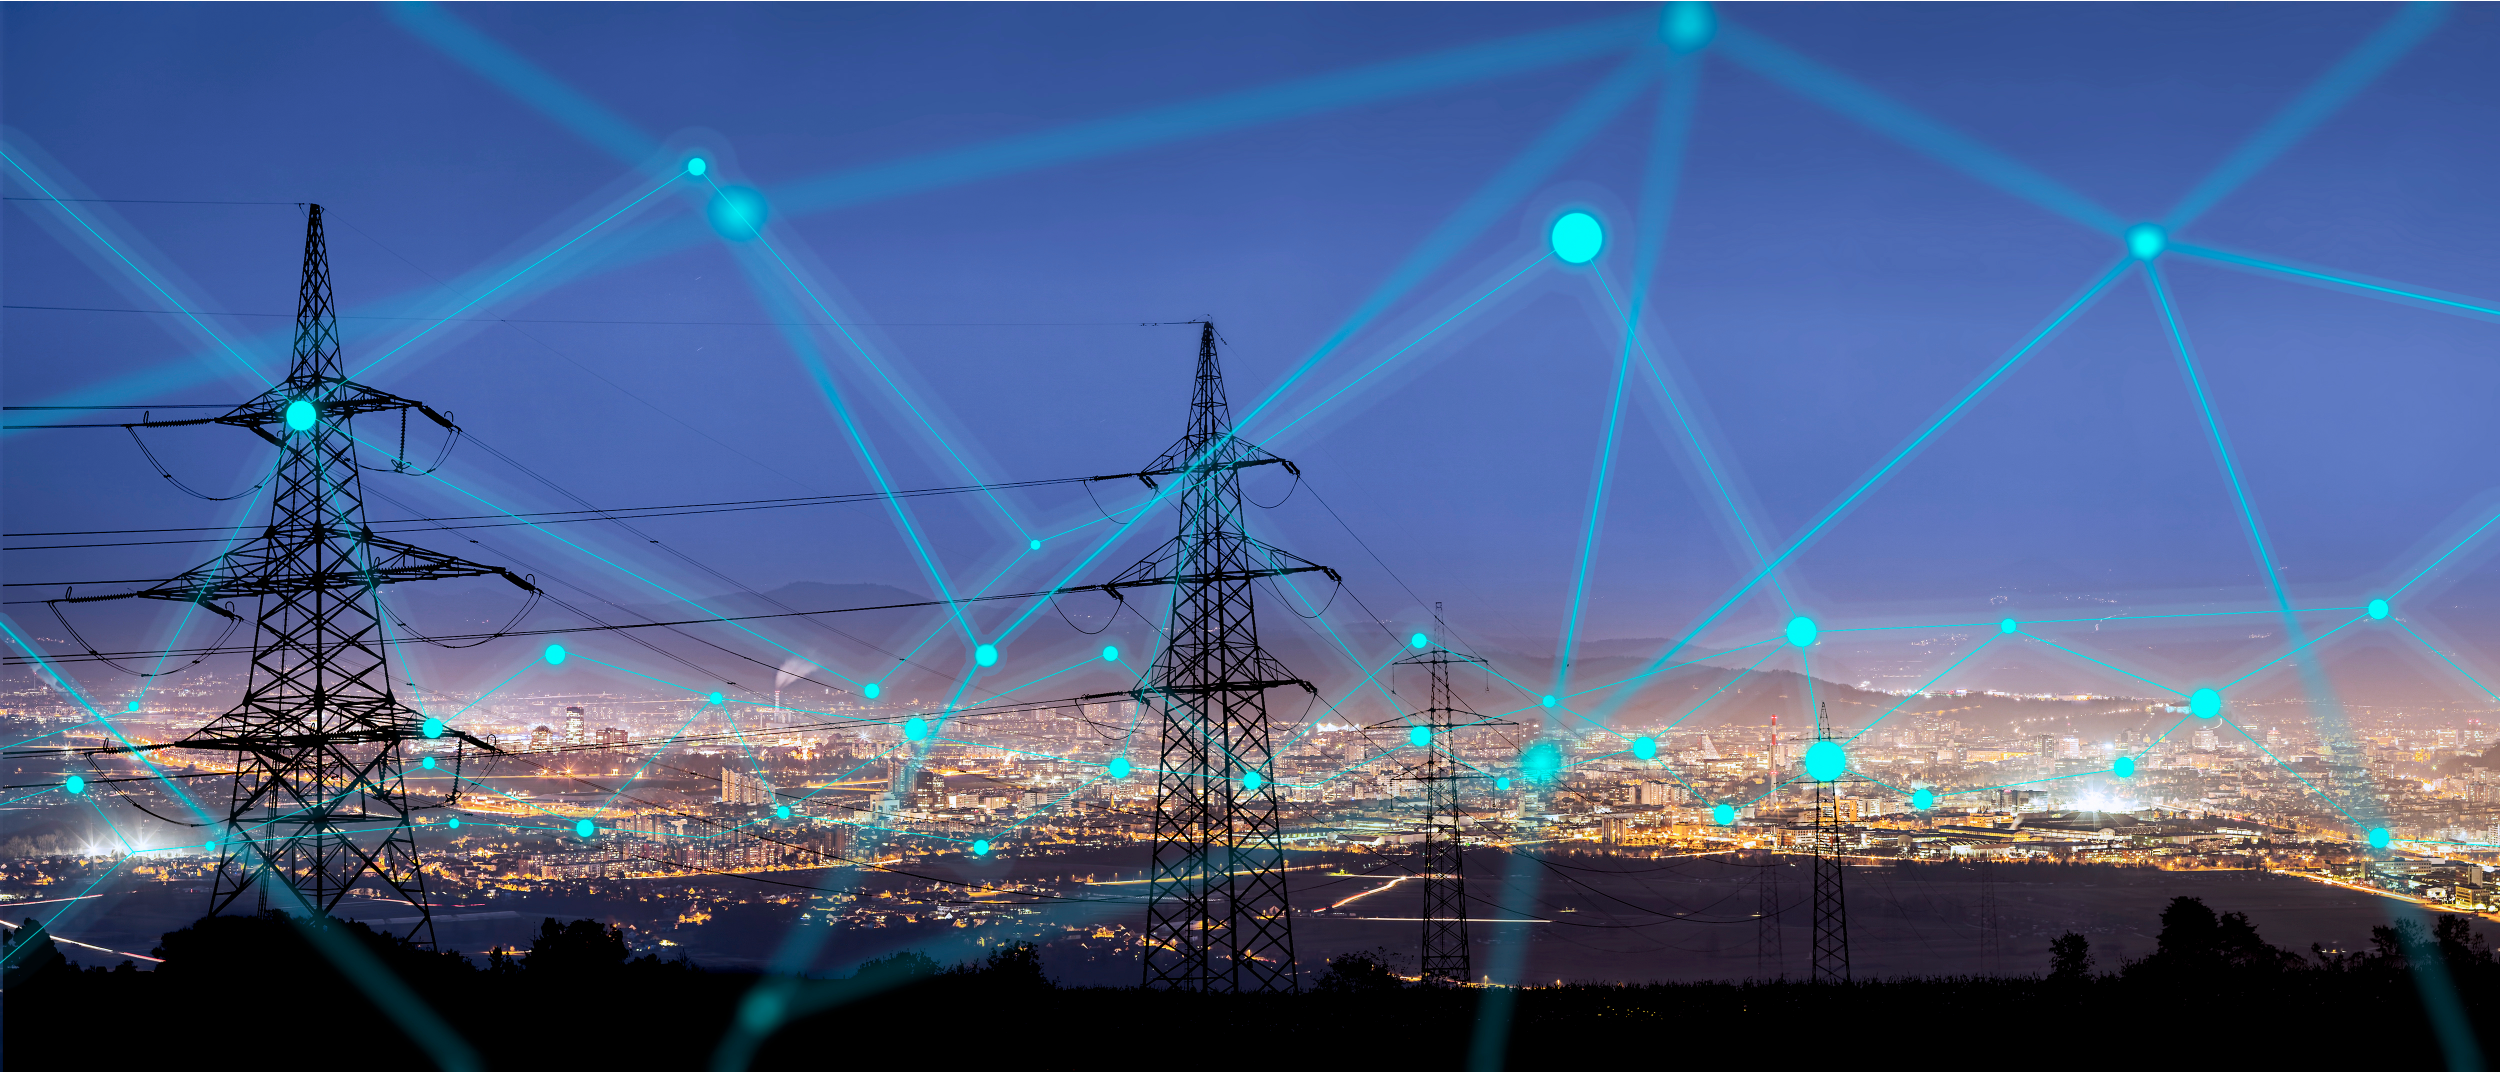 Biden administration kicks off 100-day plan to shore up cybersecurity of electric grid